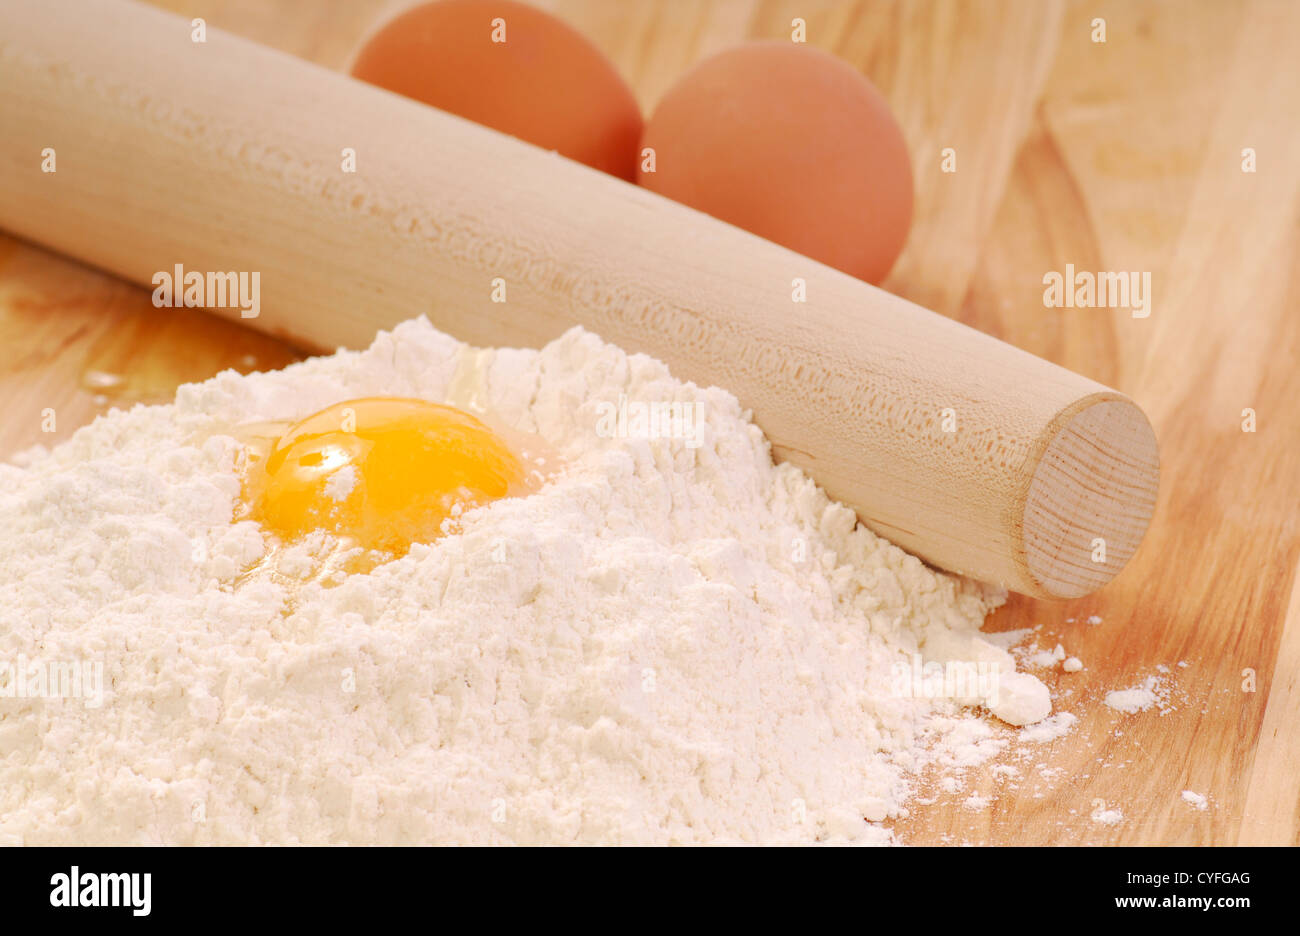 Ingredients for making fresh pasta being prepared on a cutting board Stock Photo